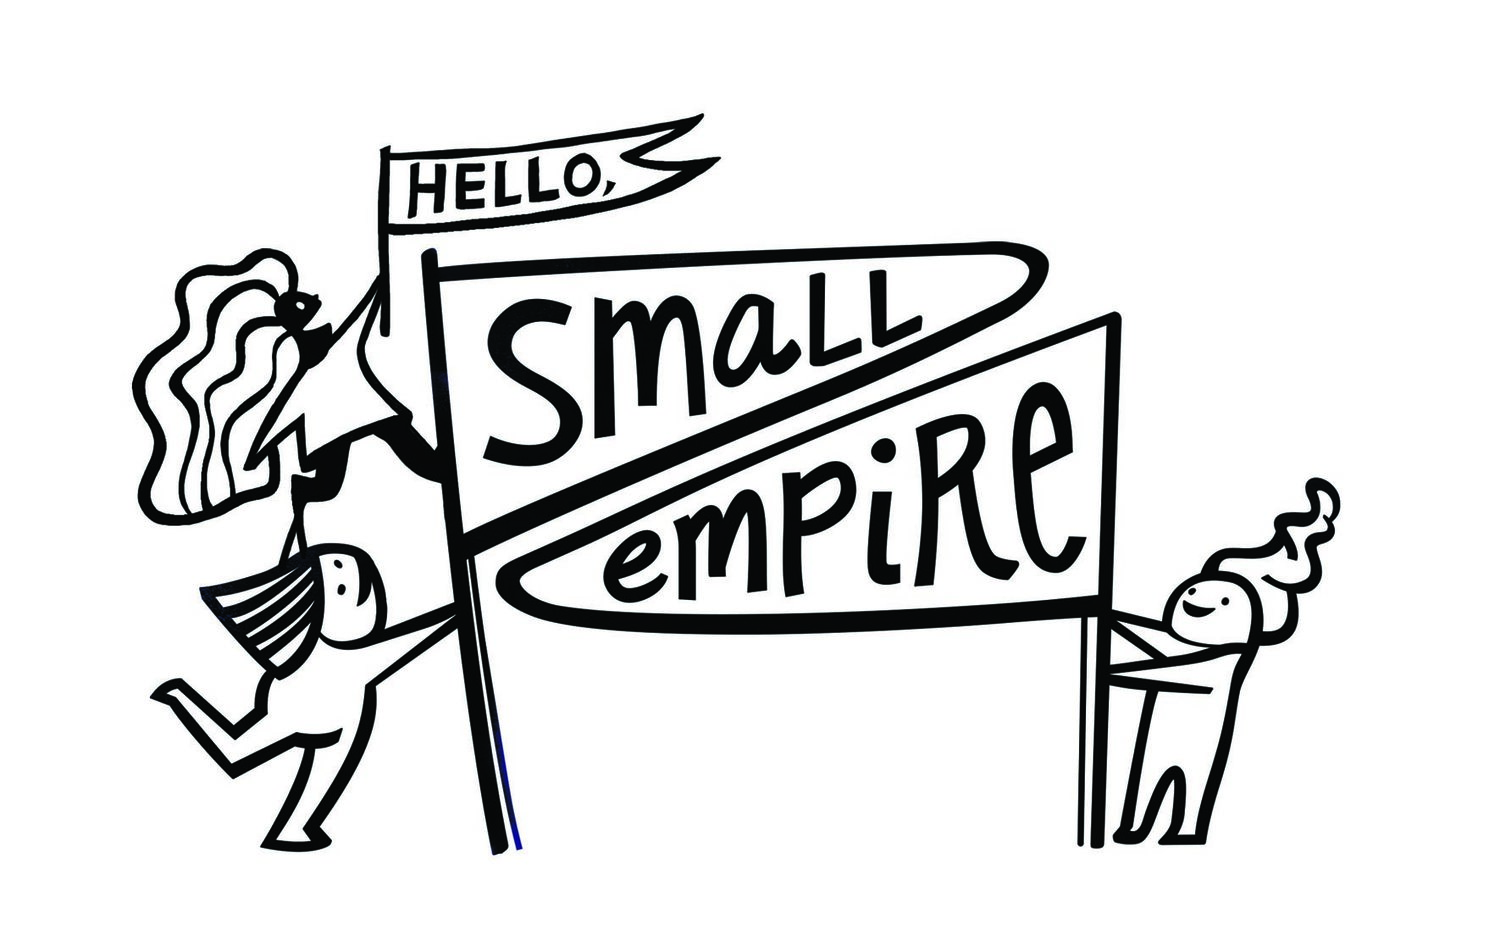 Hello Small Empire